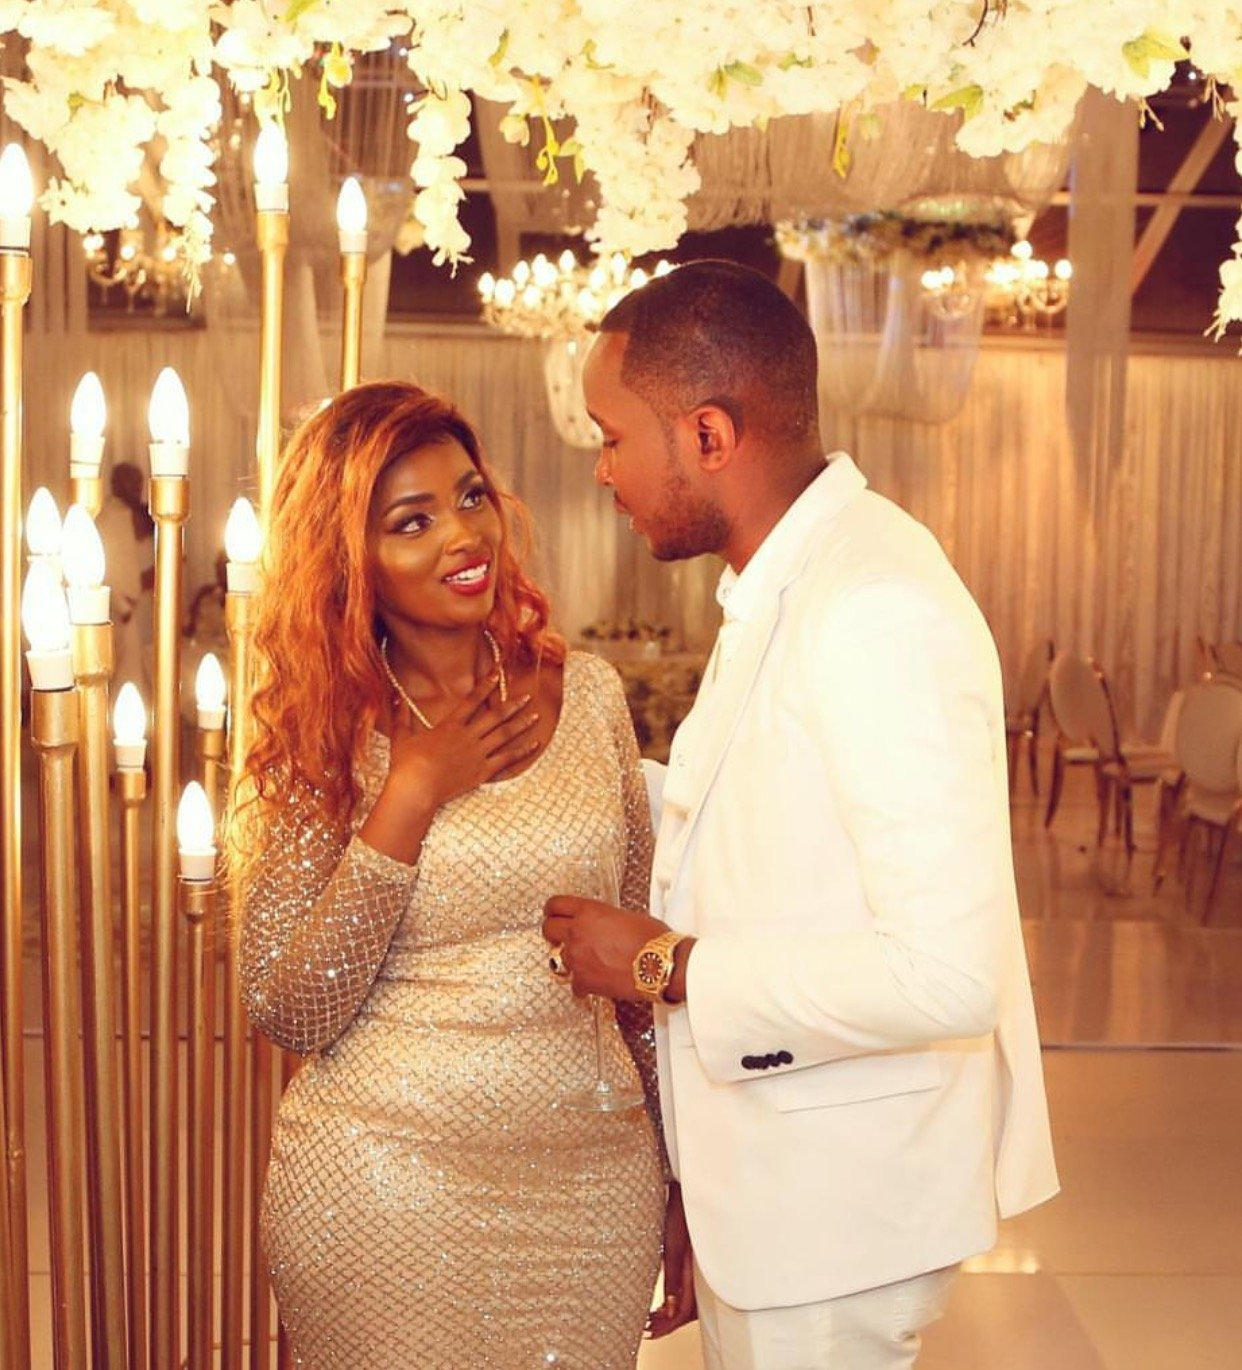 Proof that Anerlisa Muigai bagged herself the most handsome man ever!